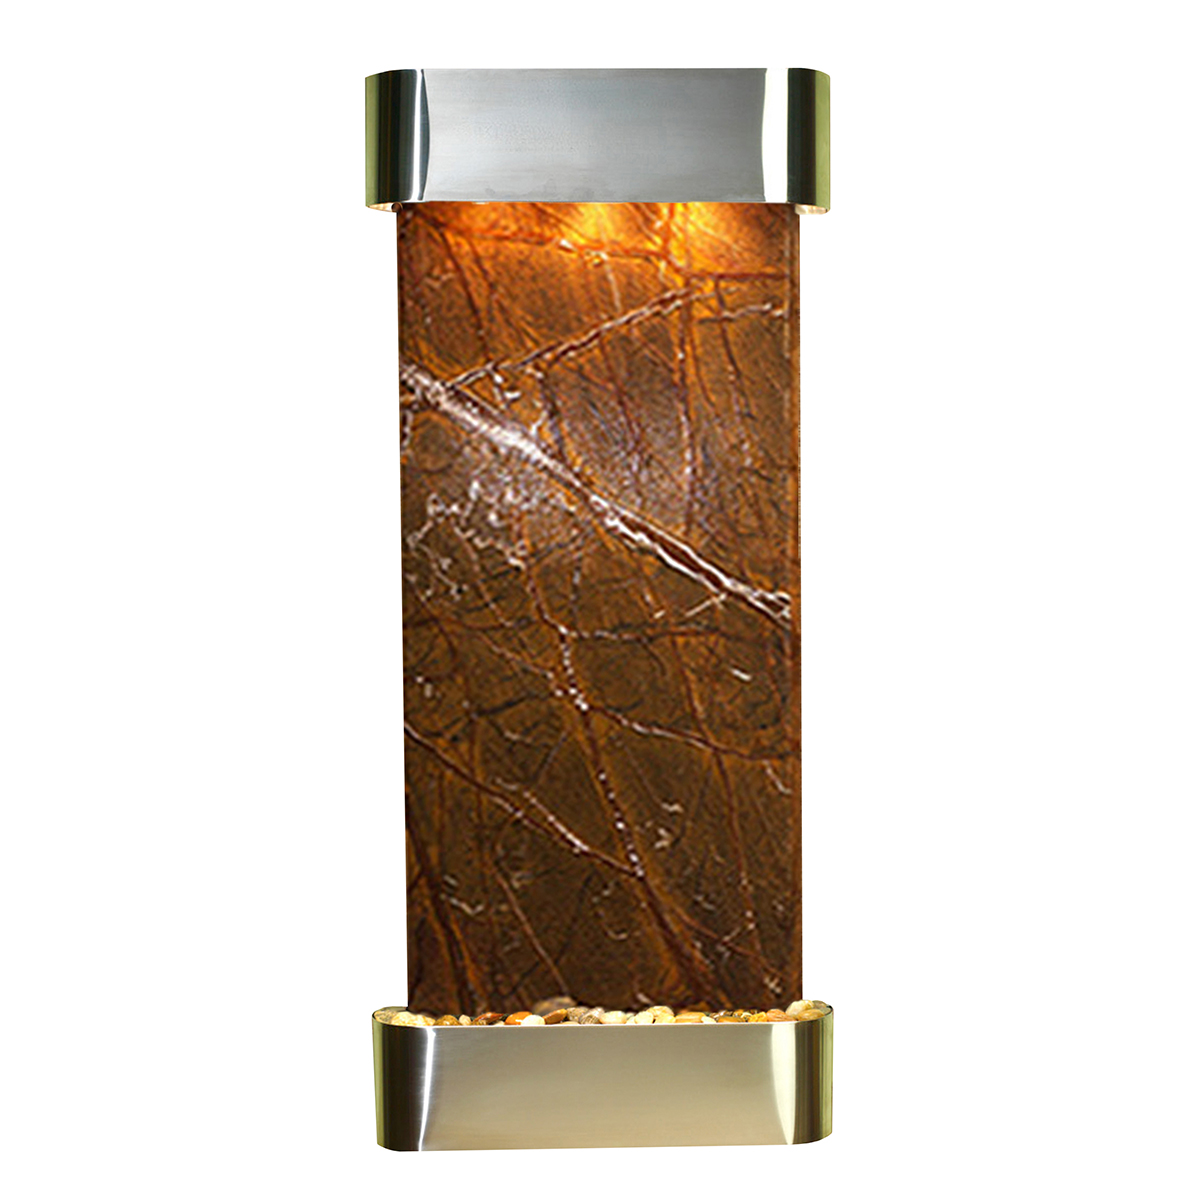 Inspiration Falls Fountain Rounded Brown Marble Photo